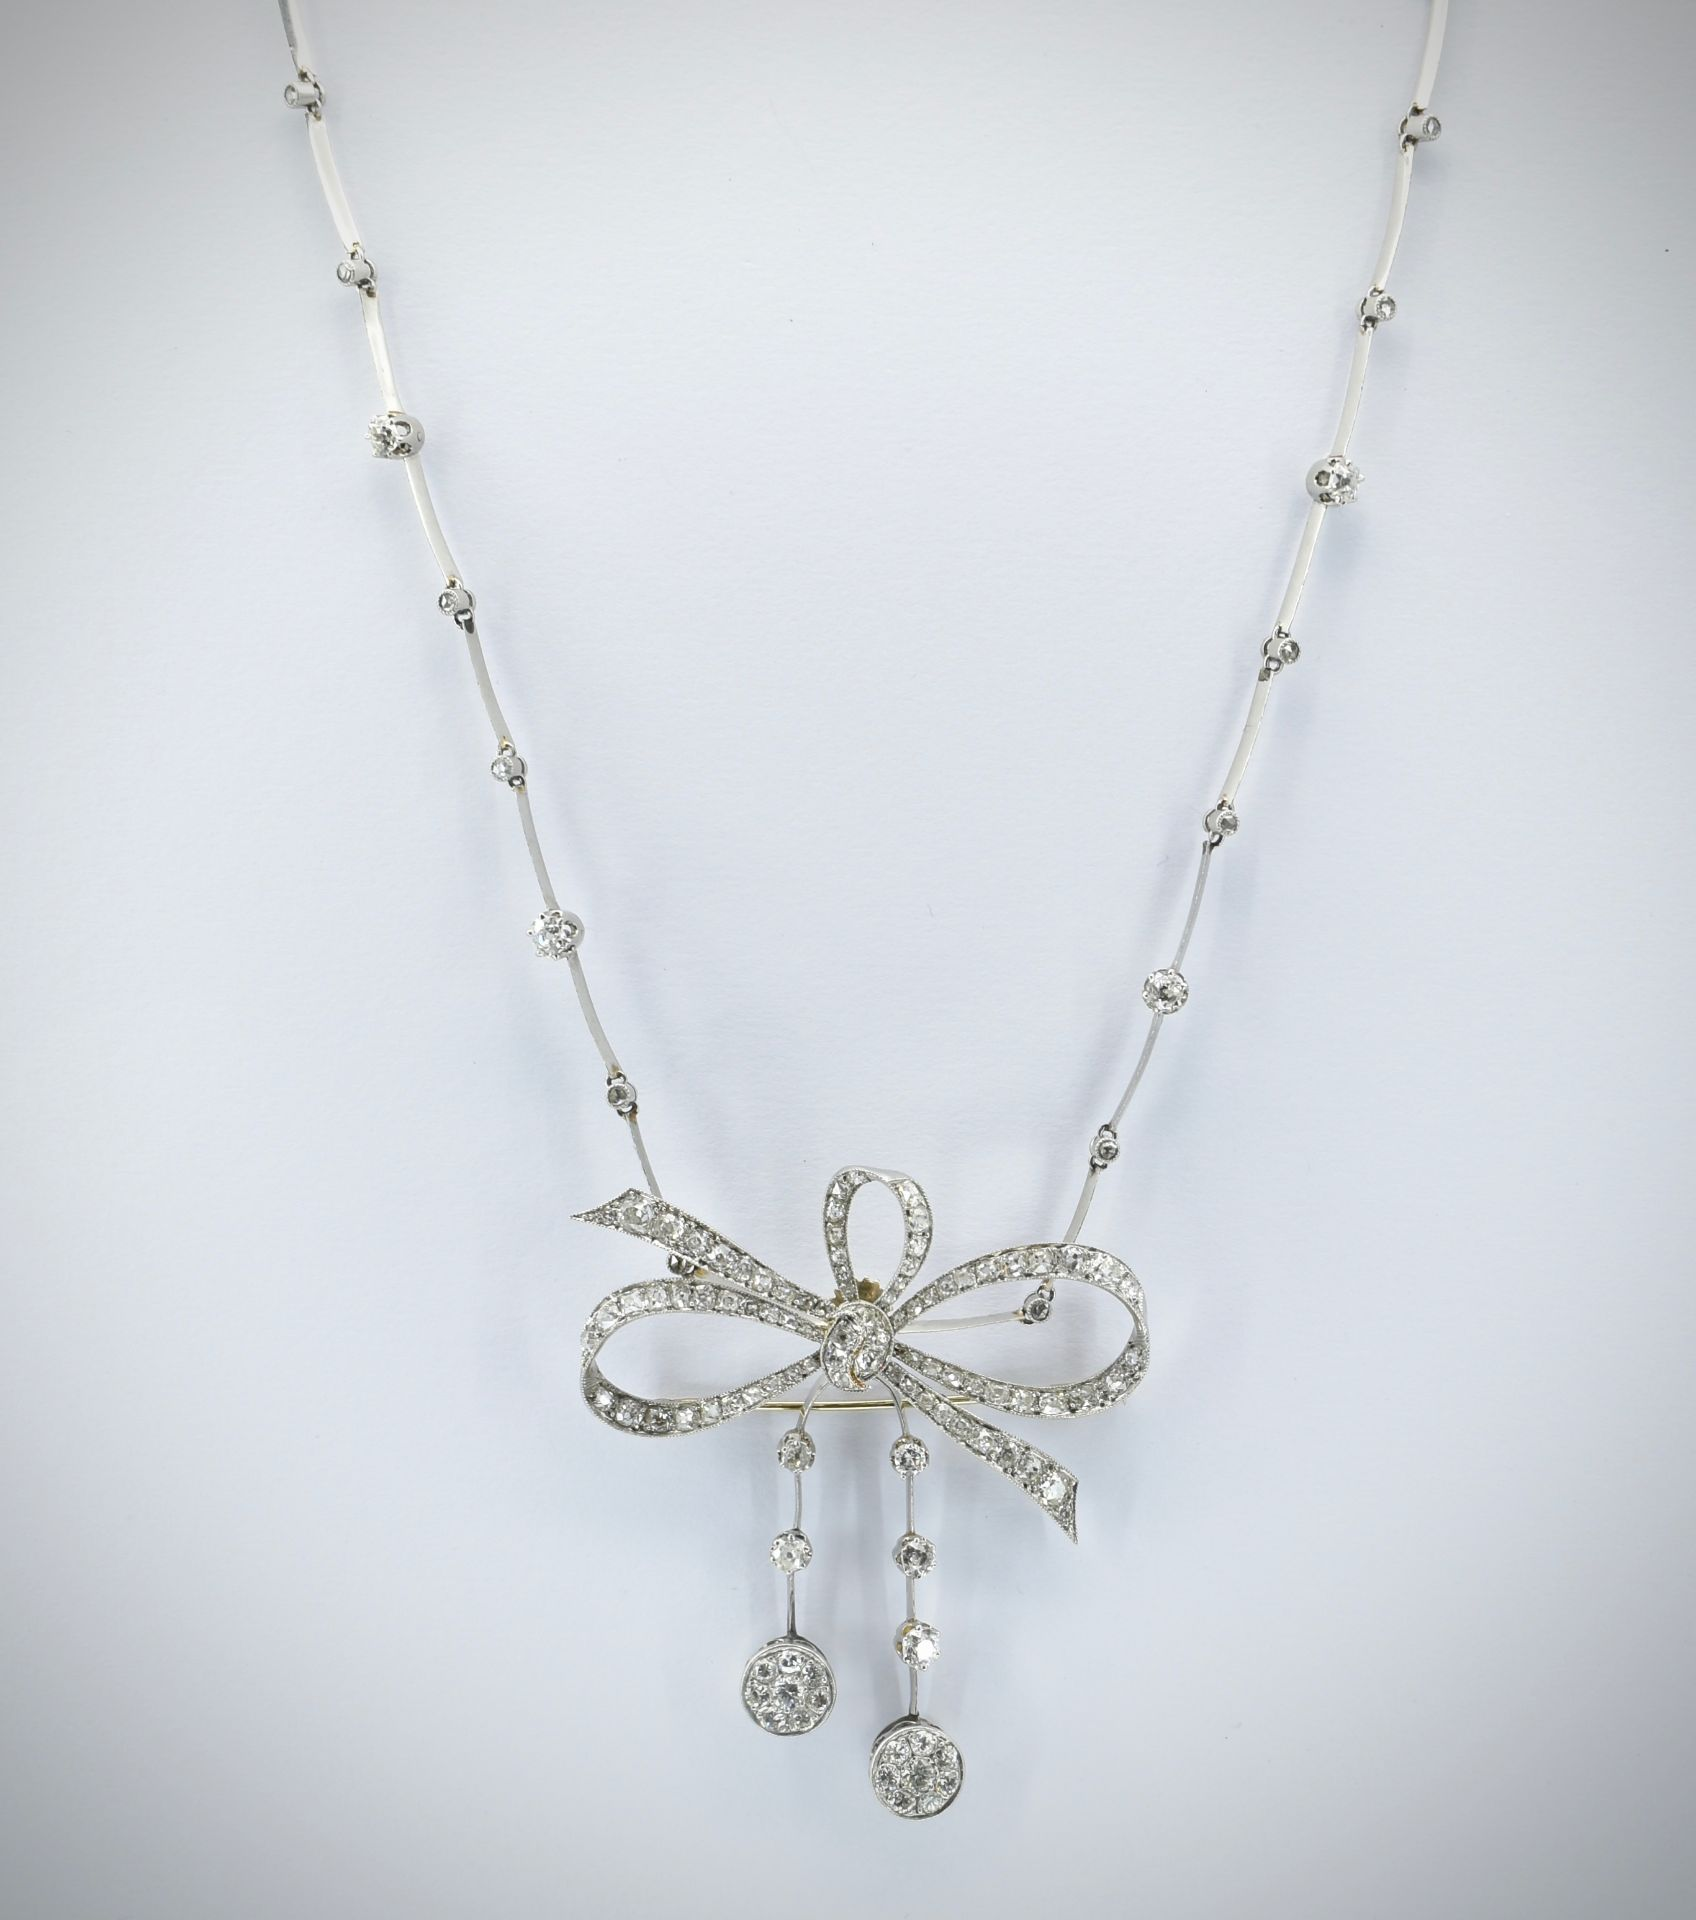 French 18ct Gold Platinum & Diamond Collar Necklace - Image 3 of 9